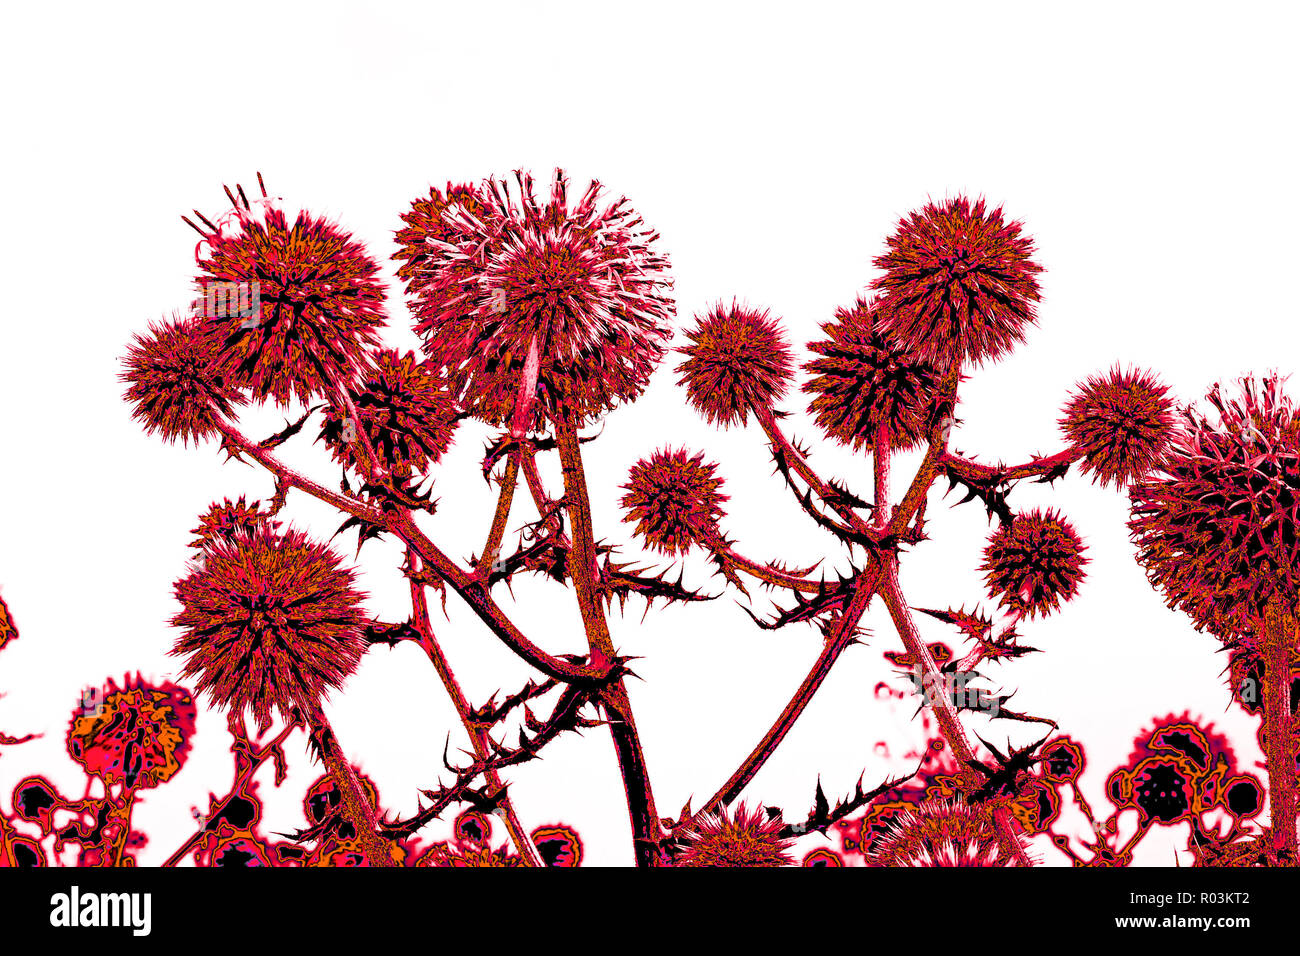 Spherical thistle flowers (Echinops ritro) on the black background. Toned herbal texture in reddish colors - Stock Image